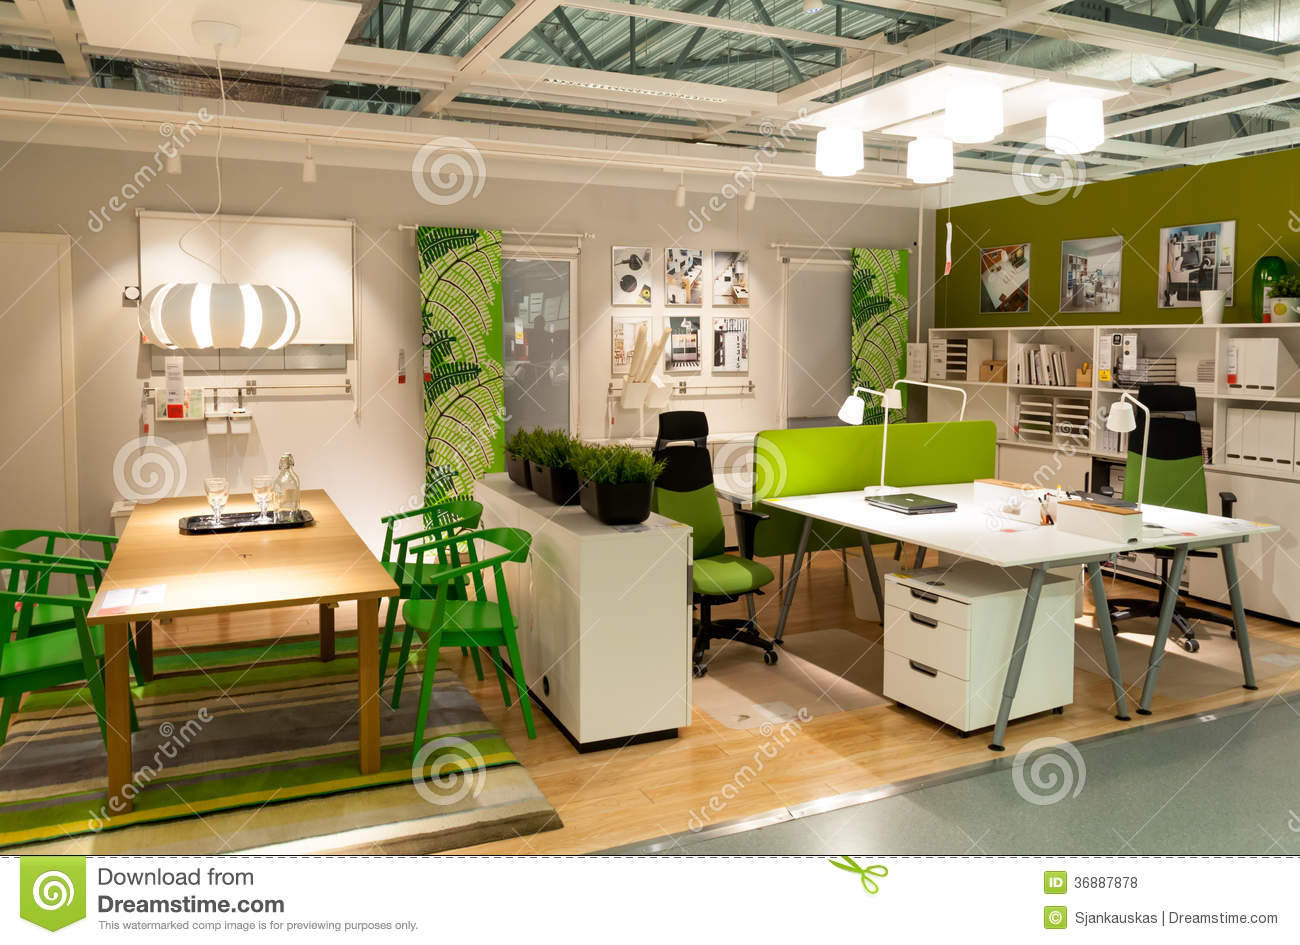 Furniture store Ikea editorial stock photo Image of design